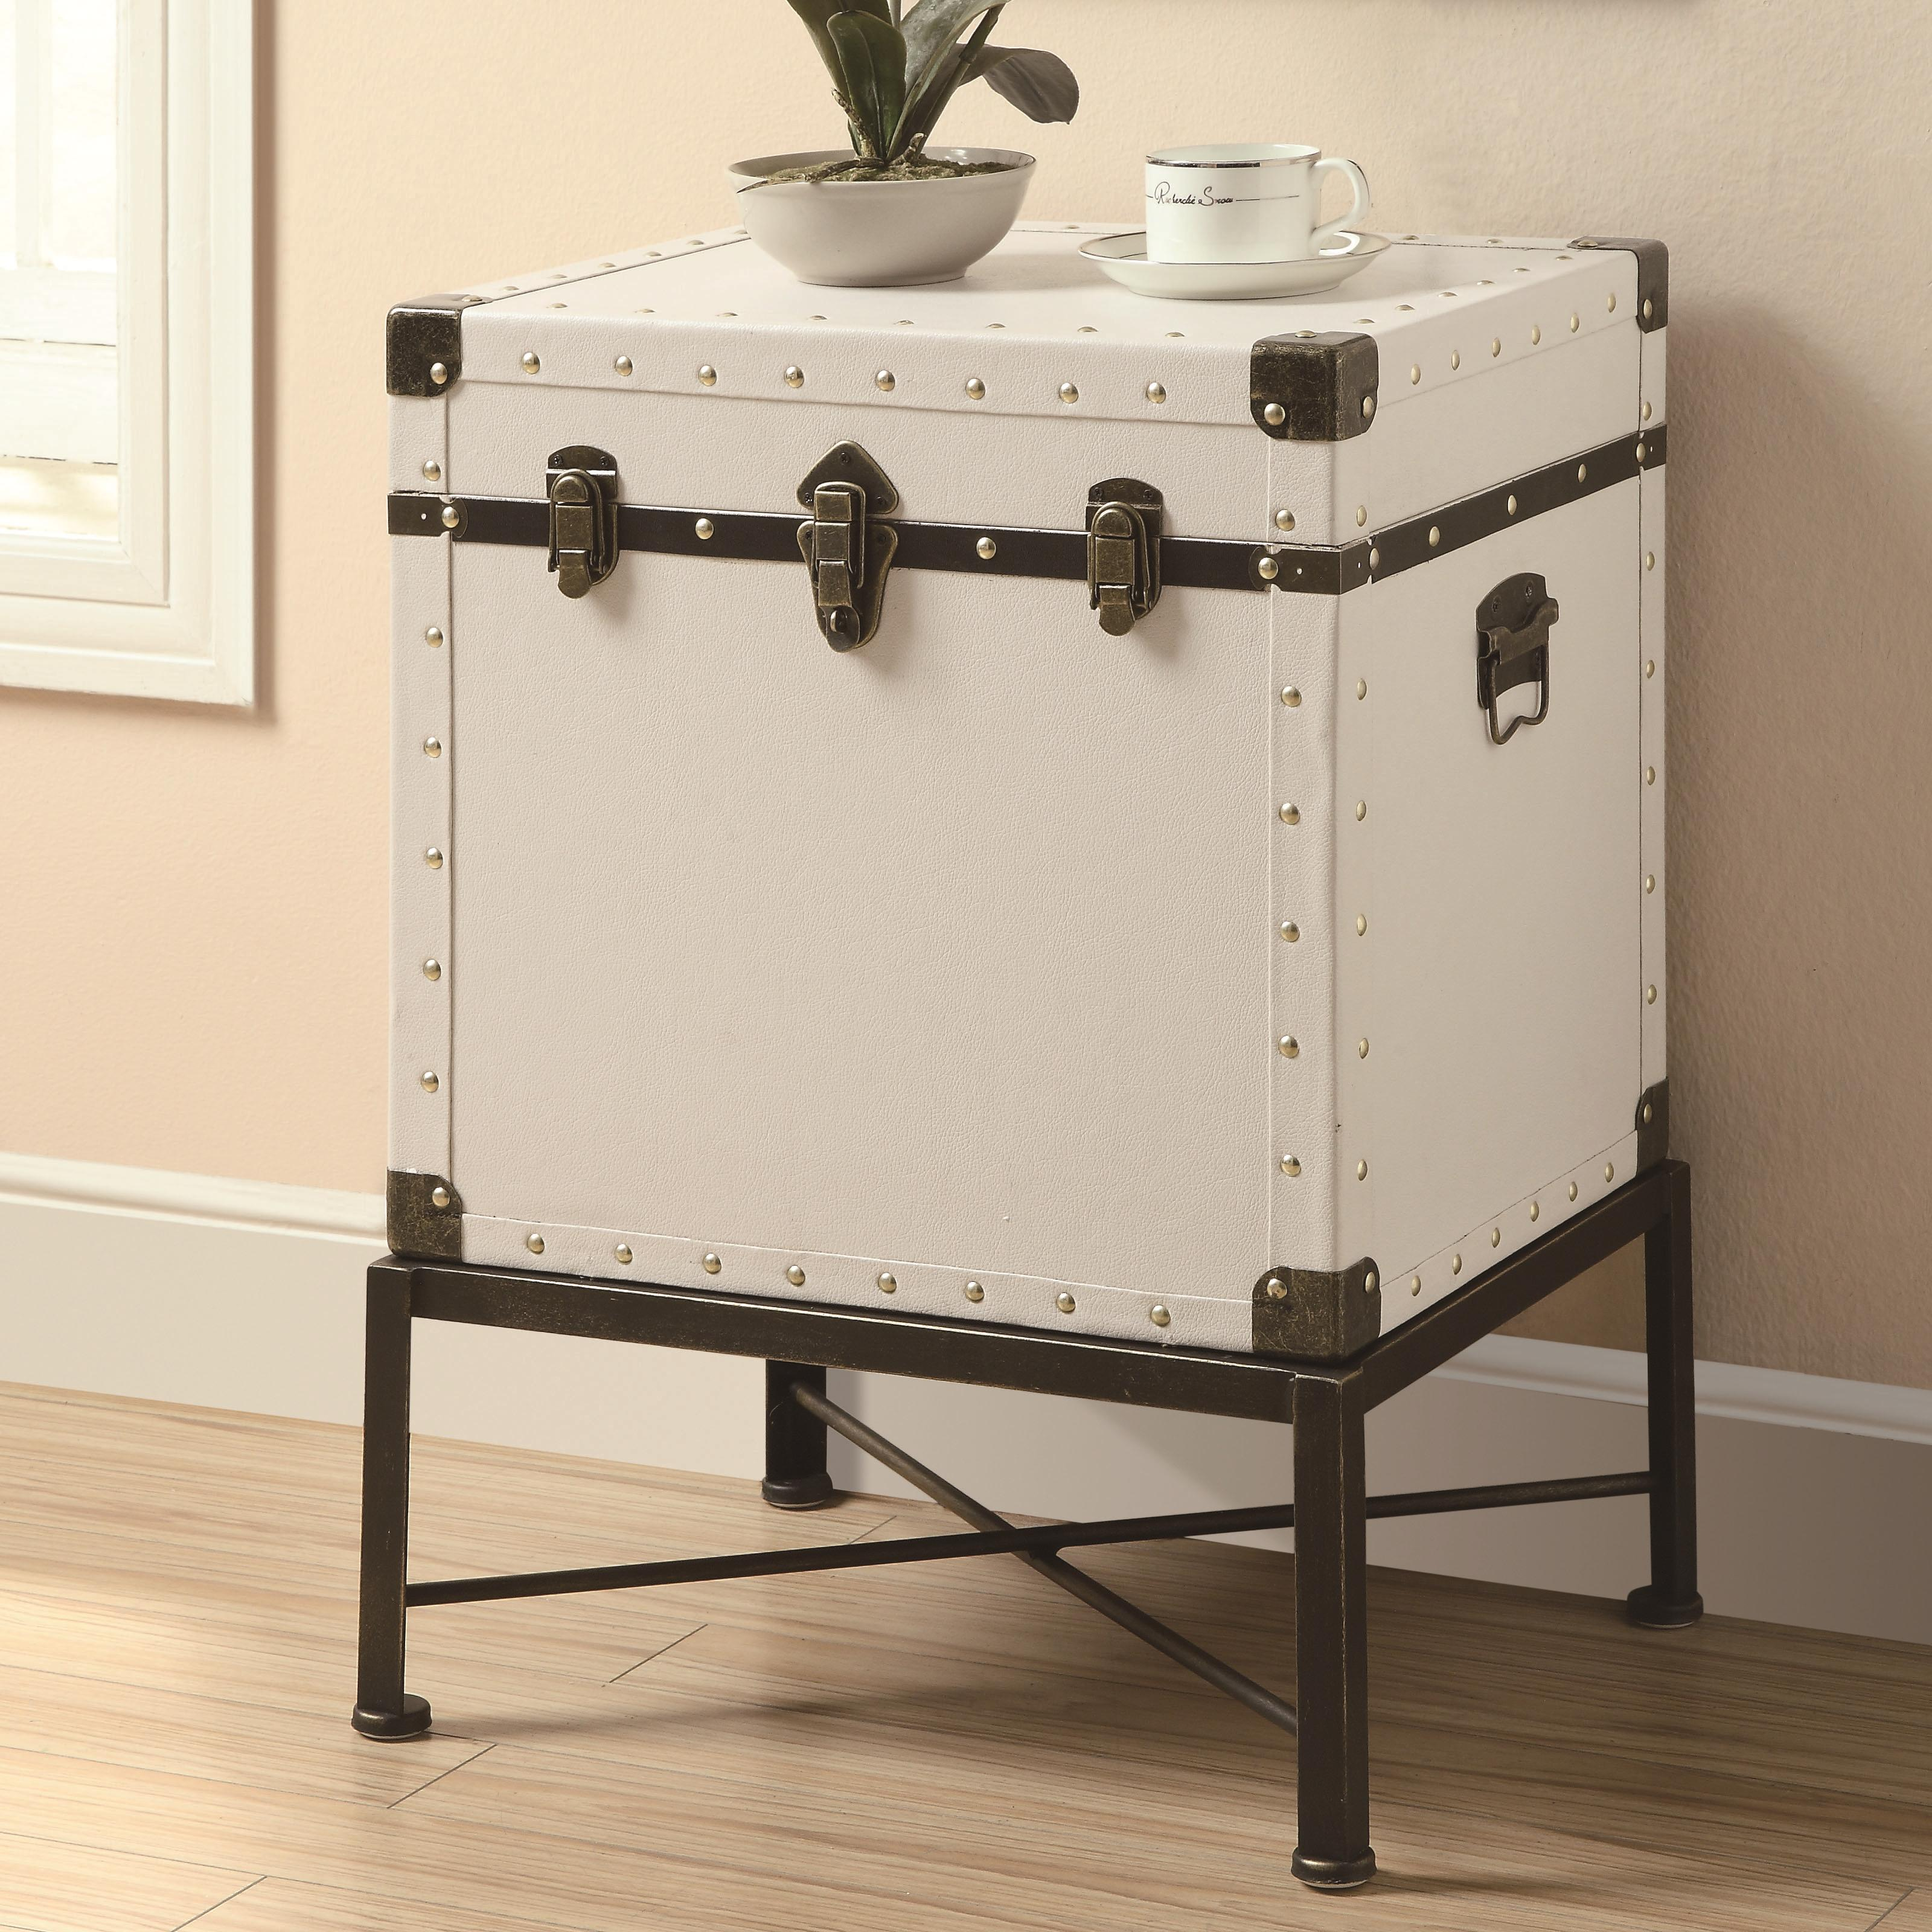 coaster accent cabinets trunk style side table value city products color storage furniture cabinet small entryway with drawer laminated tablecloth wooden wall clock dining room